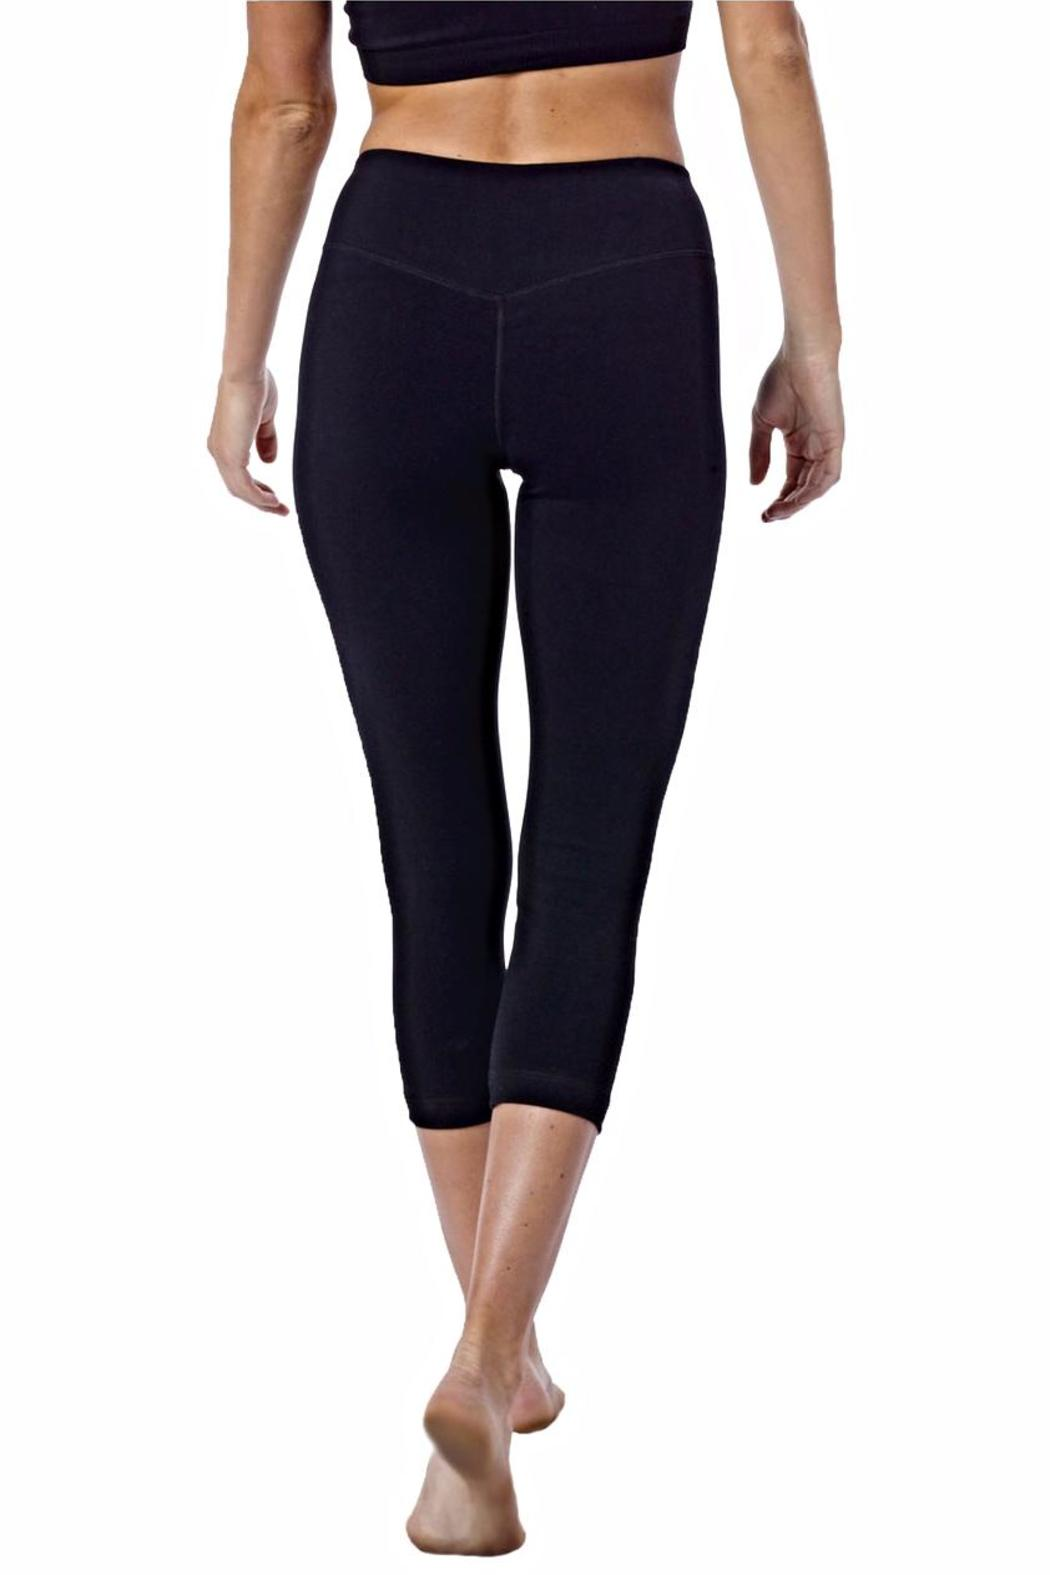 Recover active crop legging from florida by scout molly for Active salon supplies